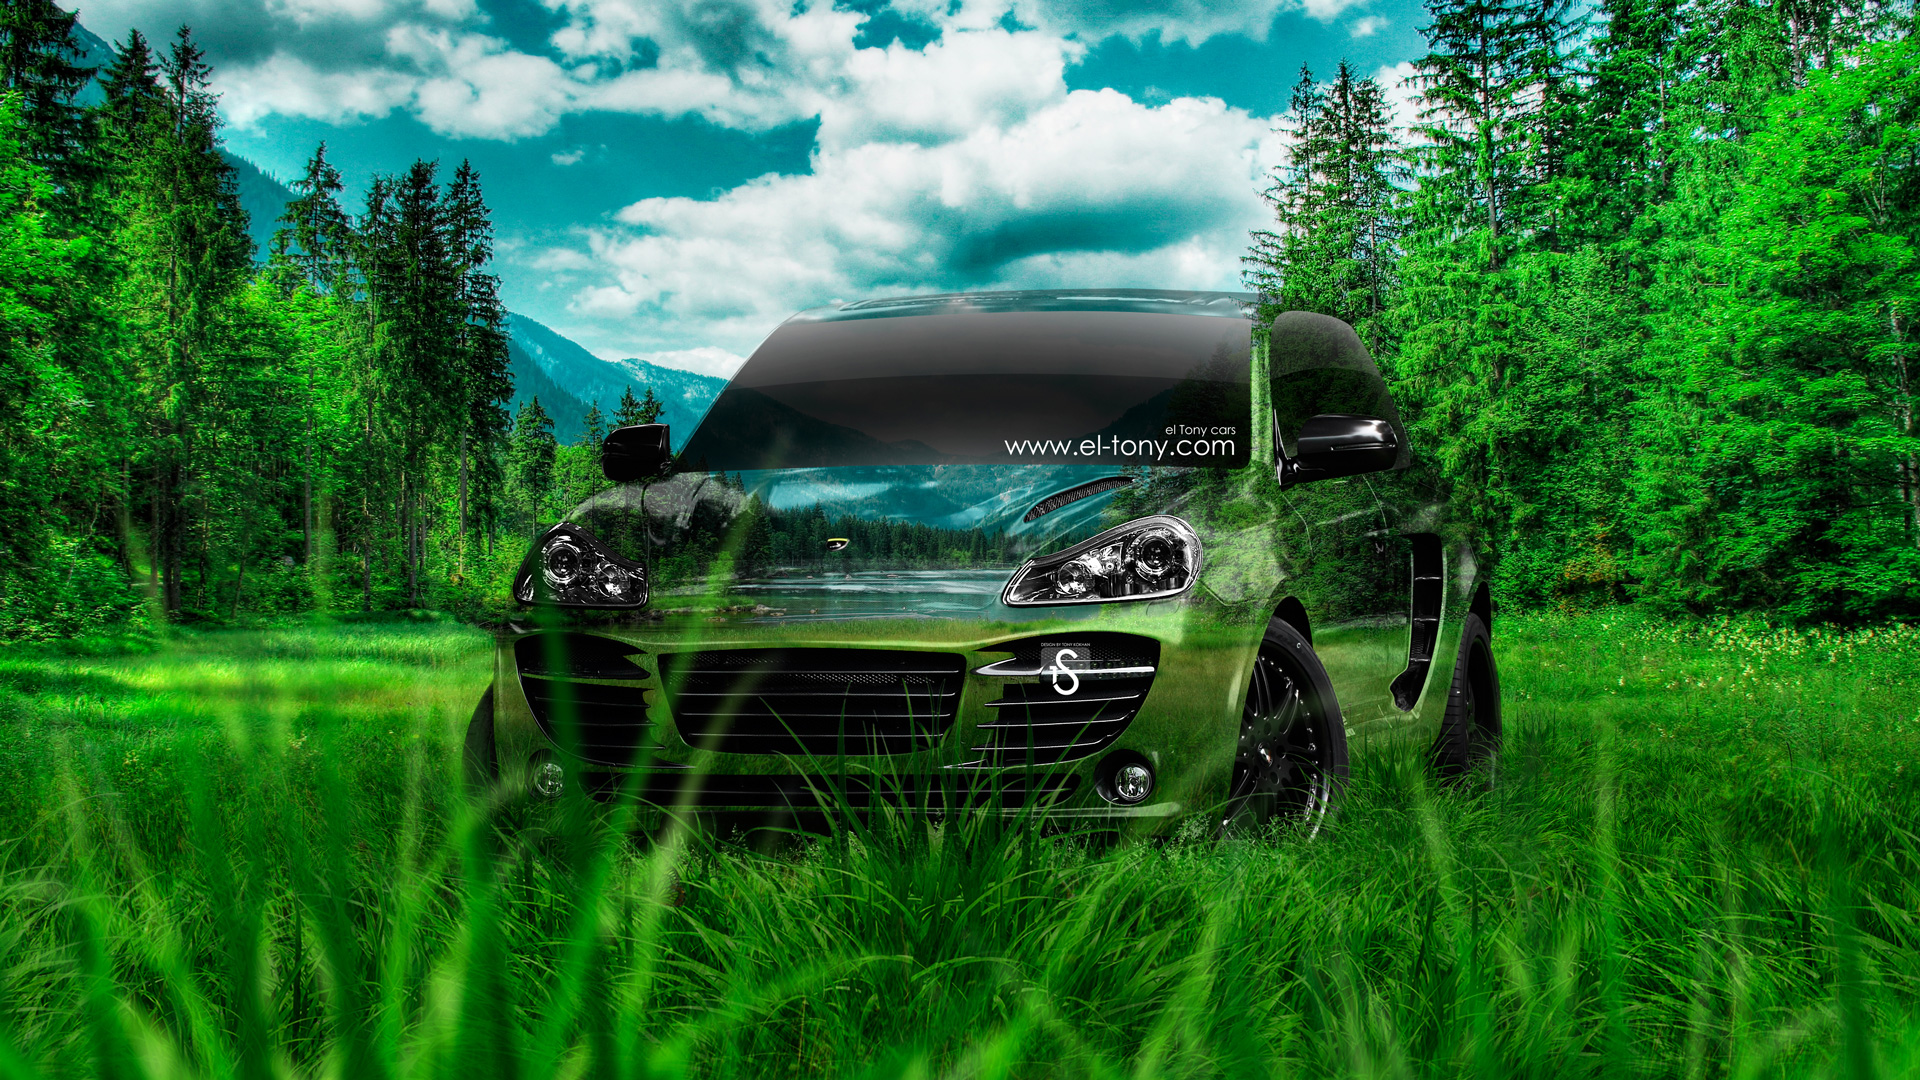 Merveilleux Porsche Cayenne Crystal Nature Car 2014 Design By